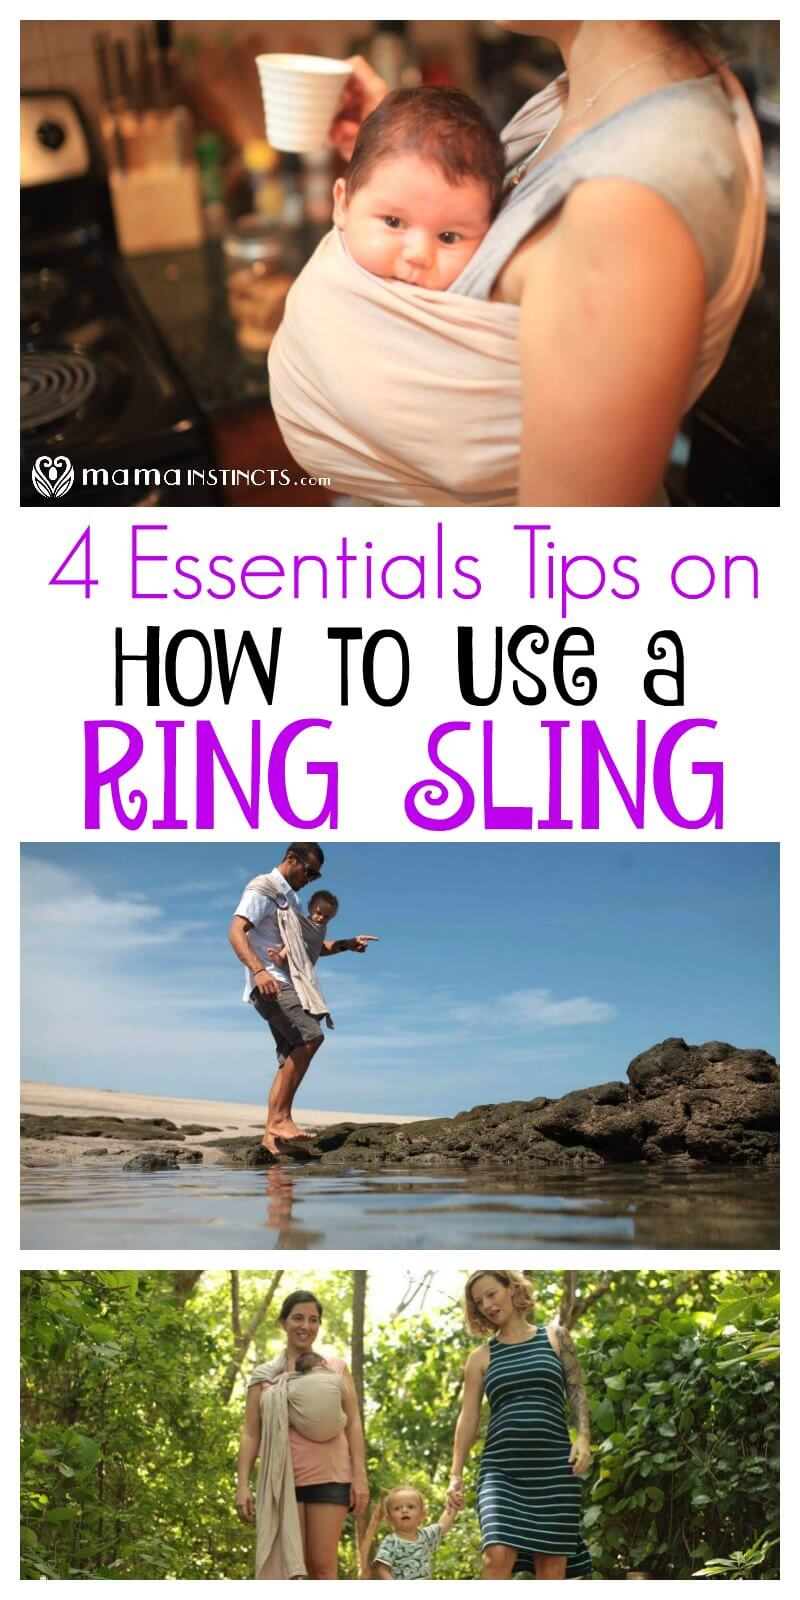 78b1aef50c7 4 Essentials Tips on How to Use a Ring Sling Babycarrier – Mama ...